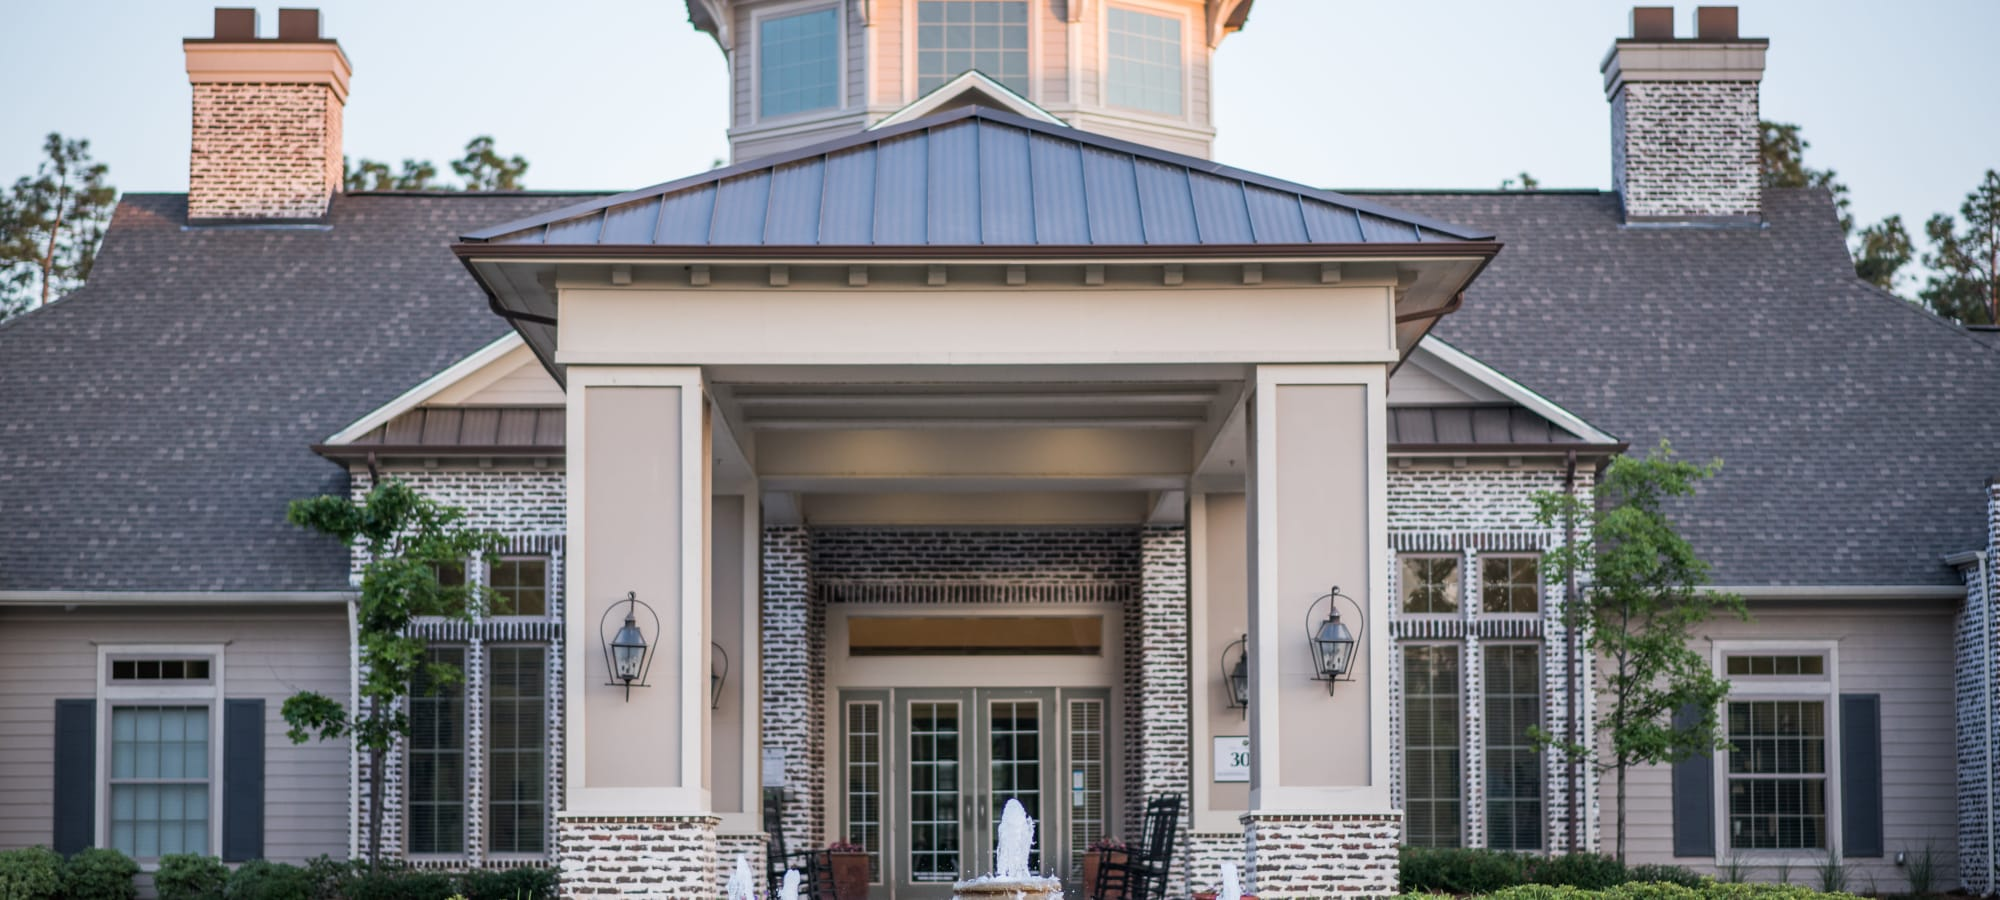 Senior living community at The Claiborne at Hattiesburg Independent Living in Hattiesburg, Mississippi.